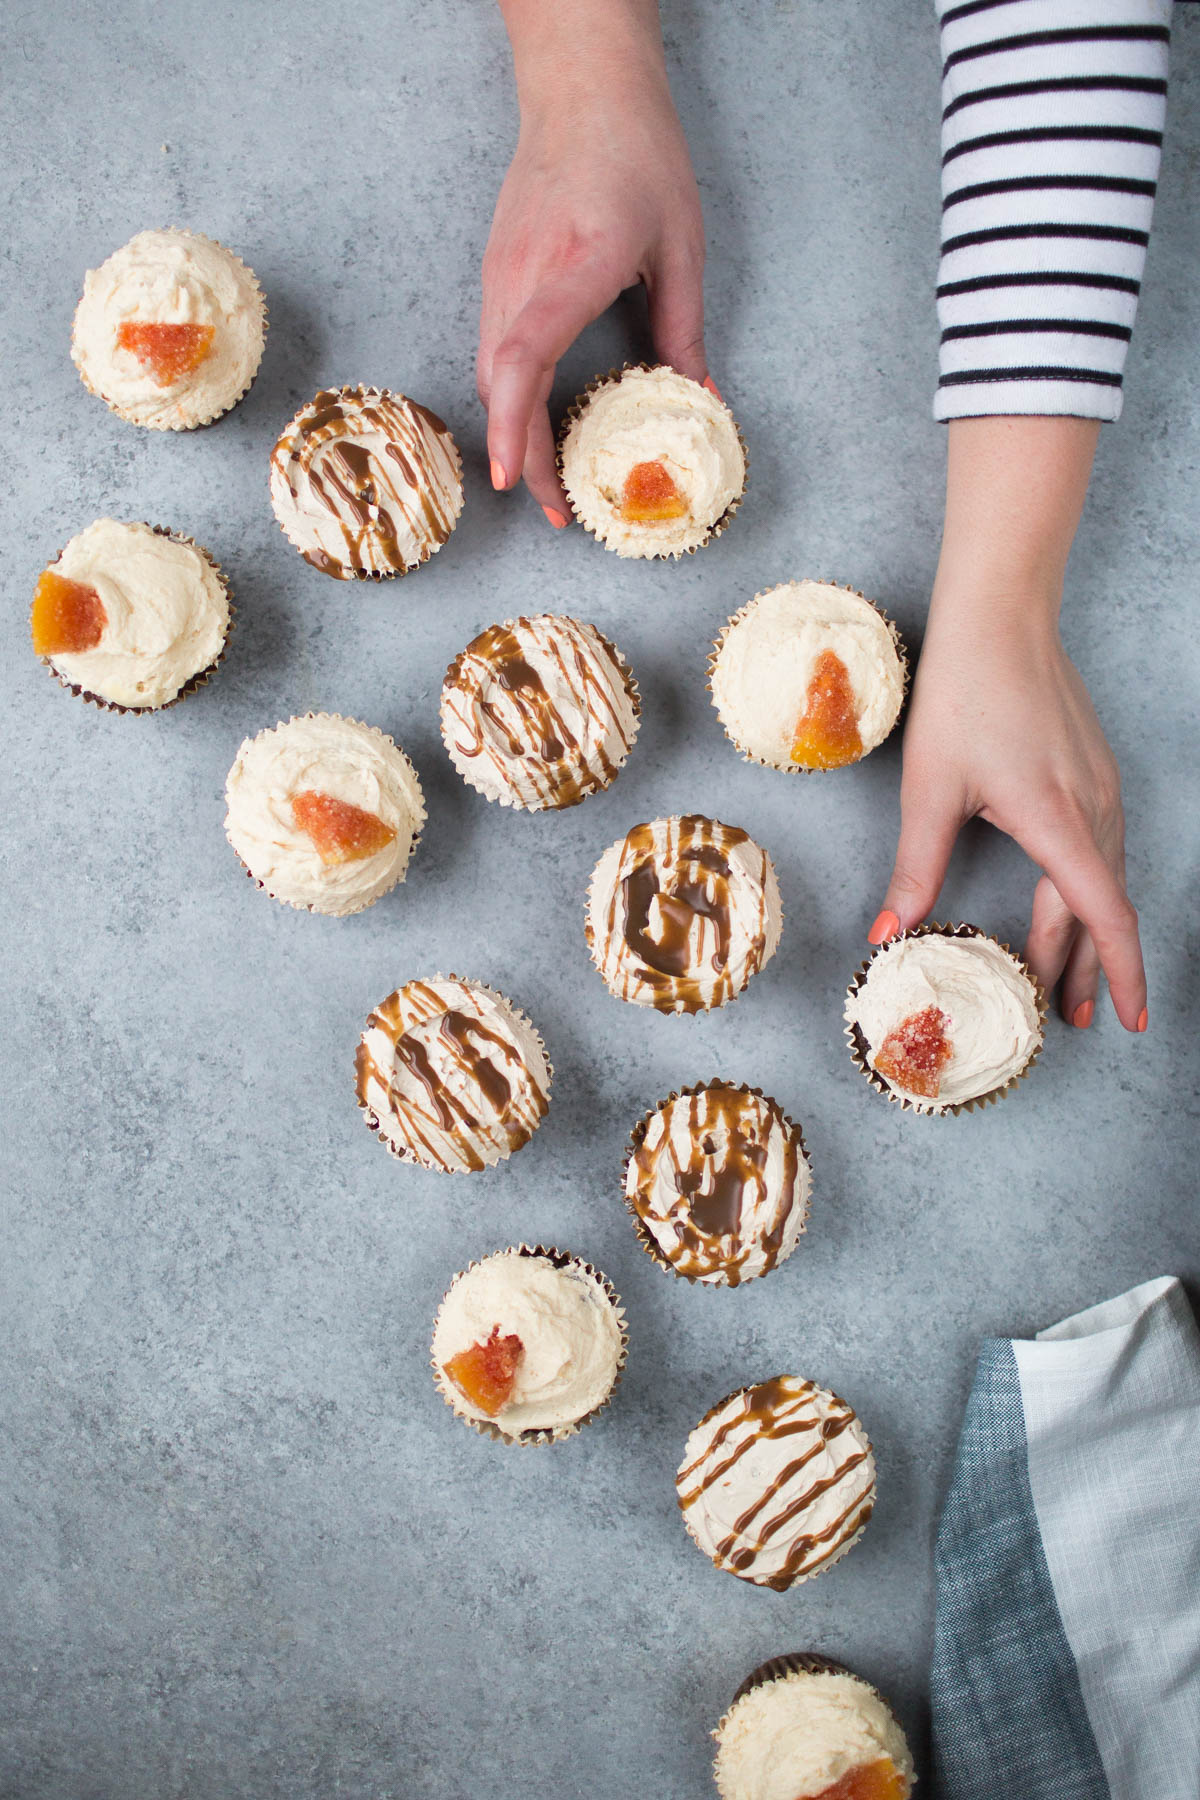 Vegan Chocolate Grapefruit and Dulce de Leche Cupcakes